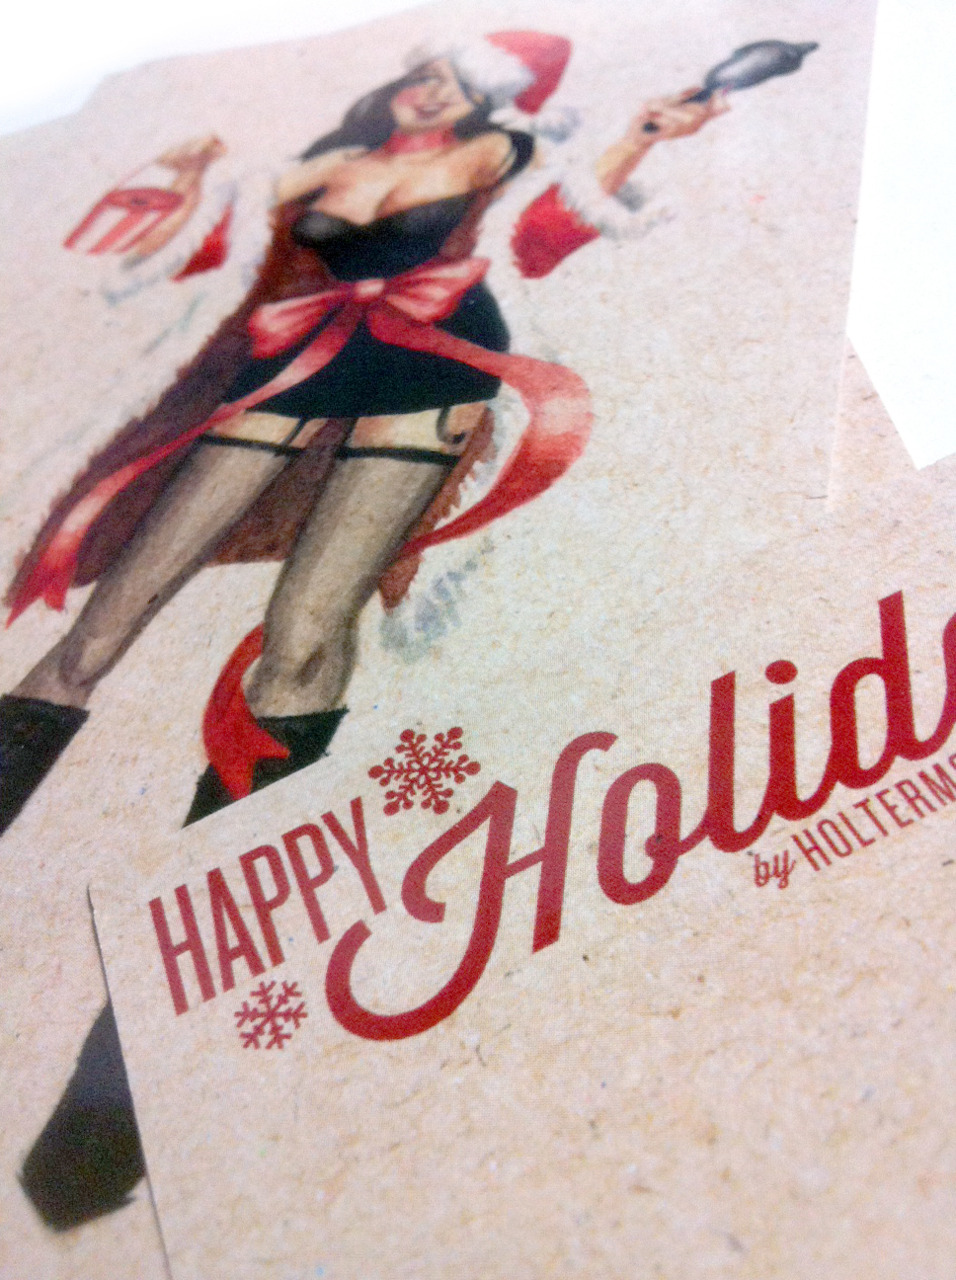 I've got some sexy Santa pinup postcards up on my Etsy shop! $1ea, 10 for $9, or 20 for $15.